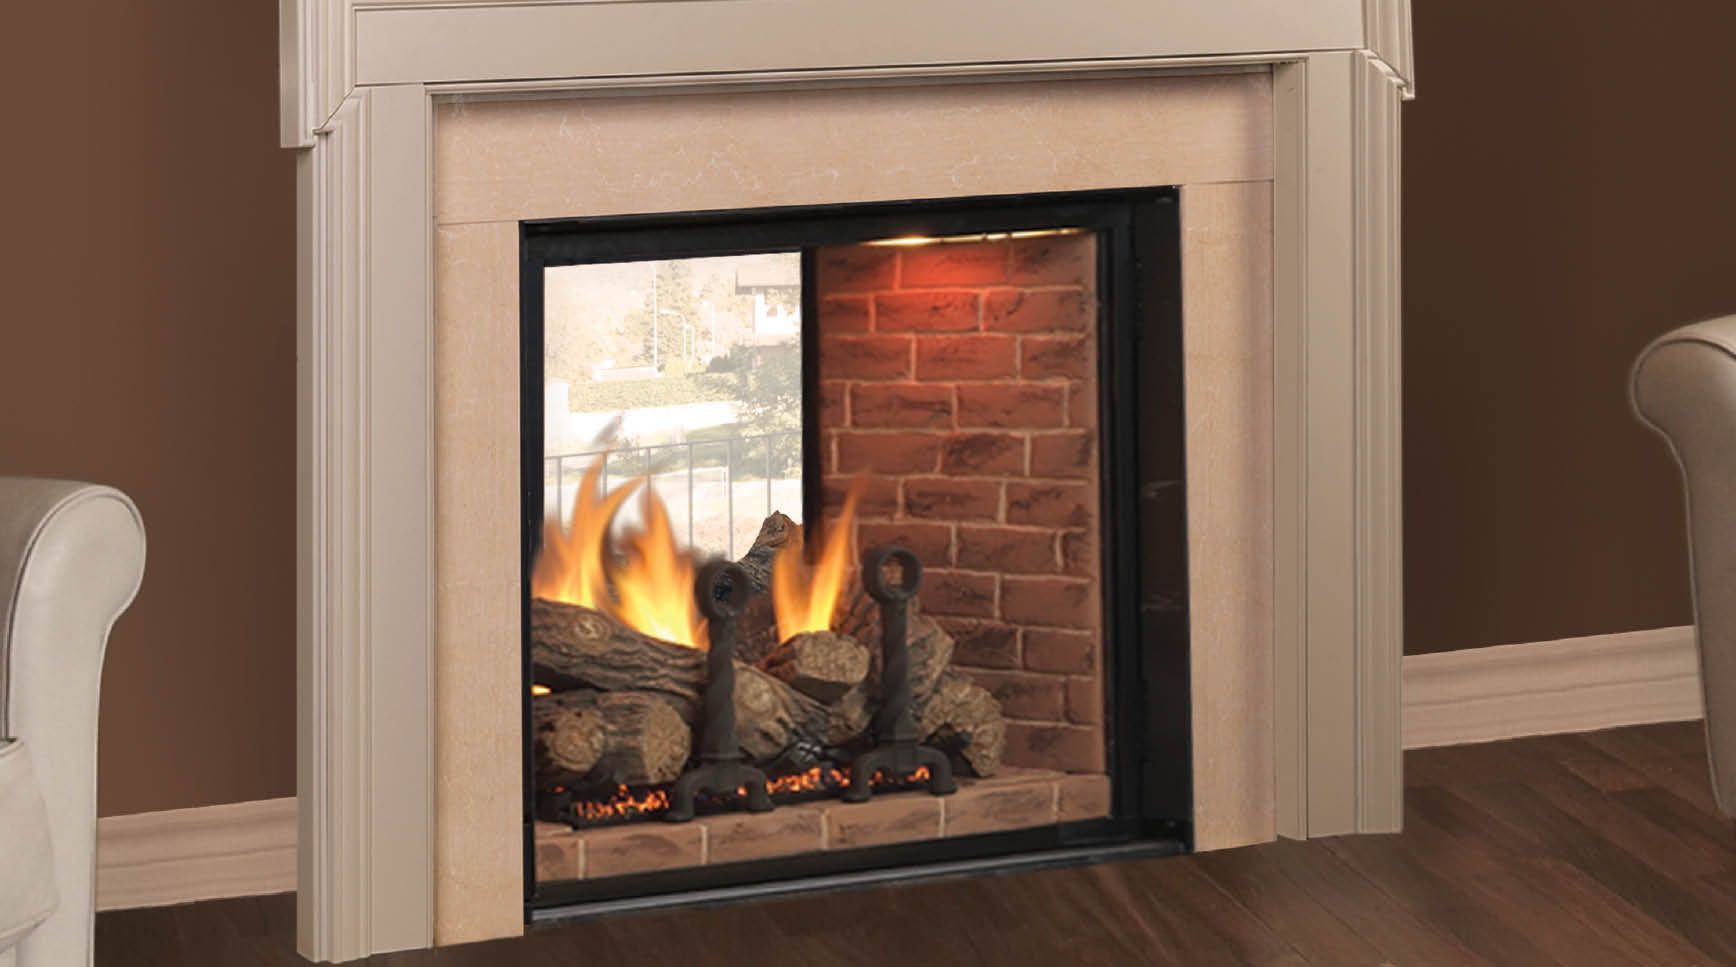 Efficiency of gas fireplace - 1000 Images About Gas Fireplaces On Pinterest Gas Fireplaces